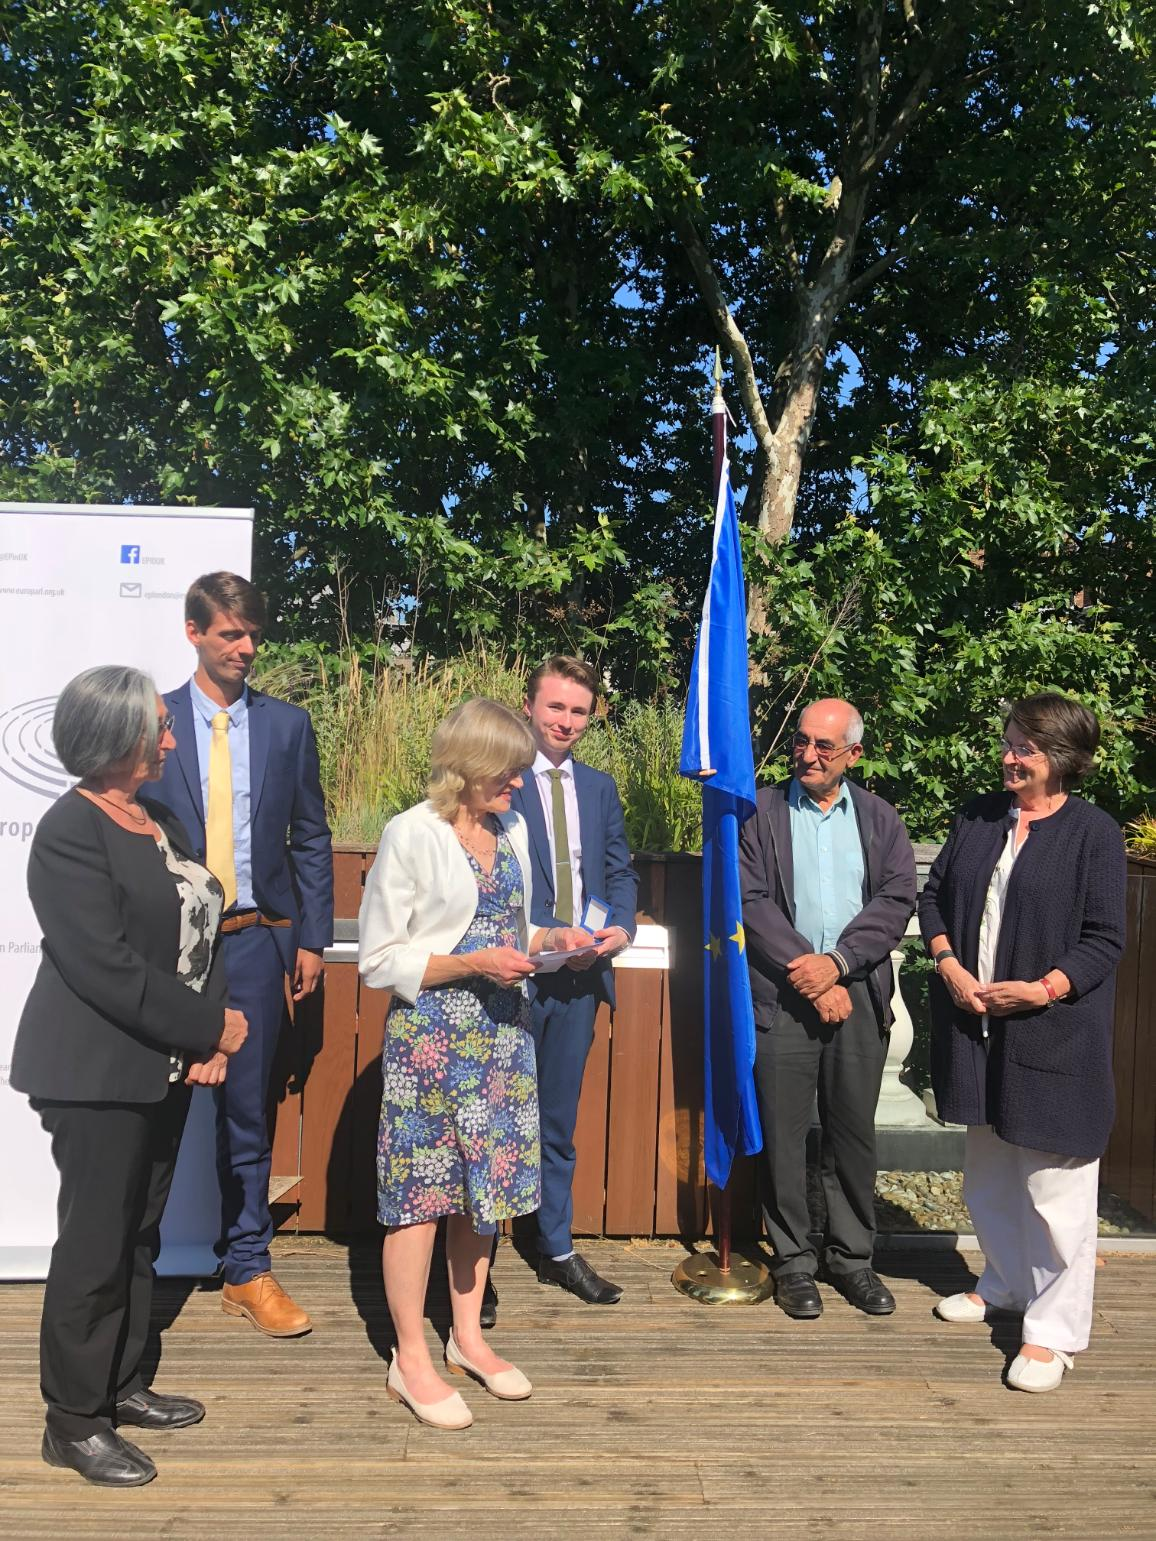 UK European Citizens' prize for 2018